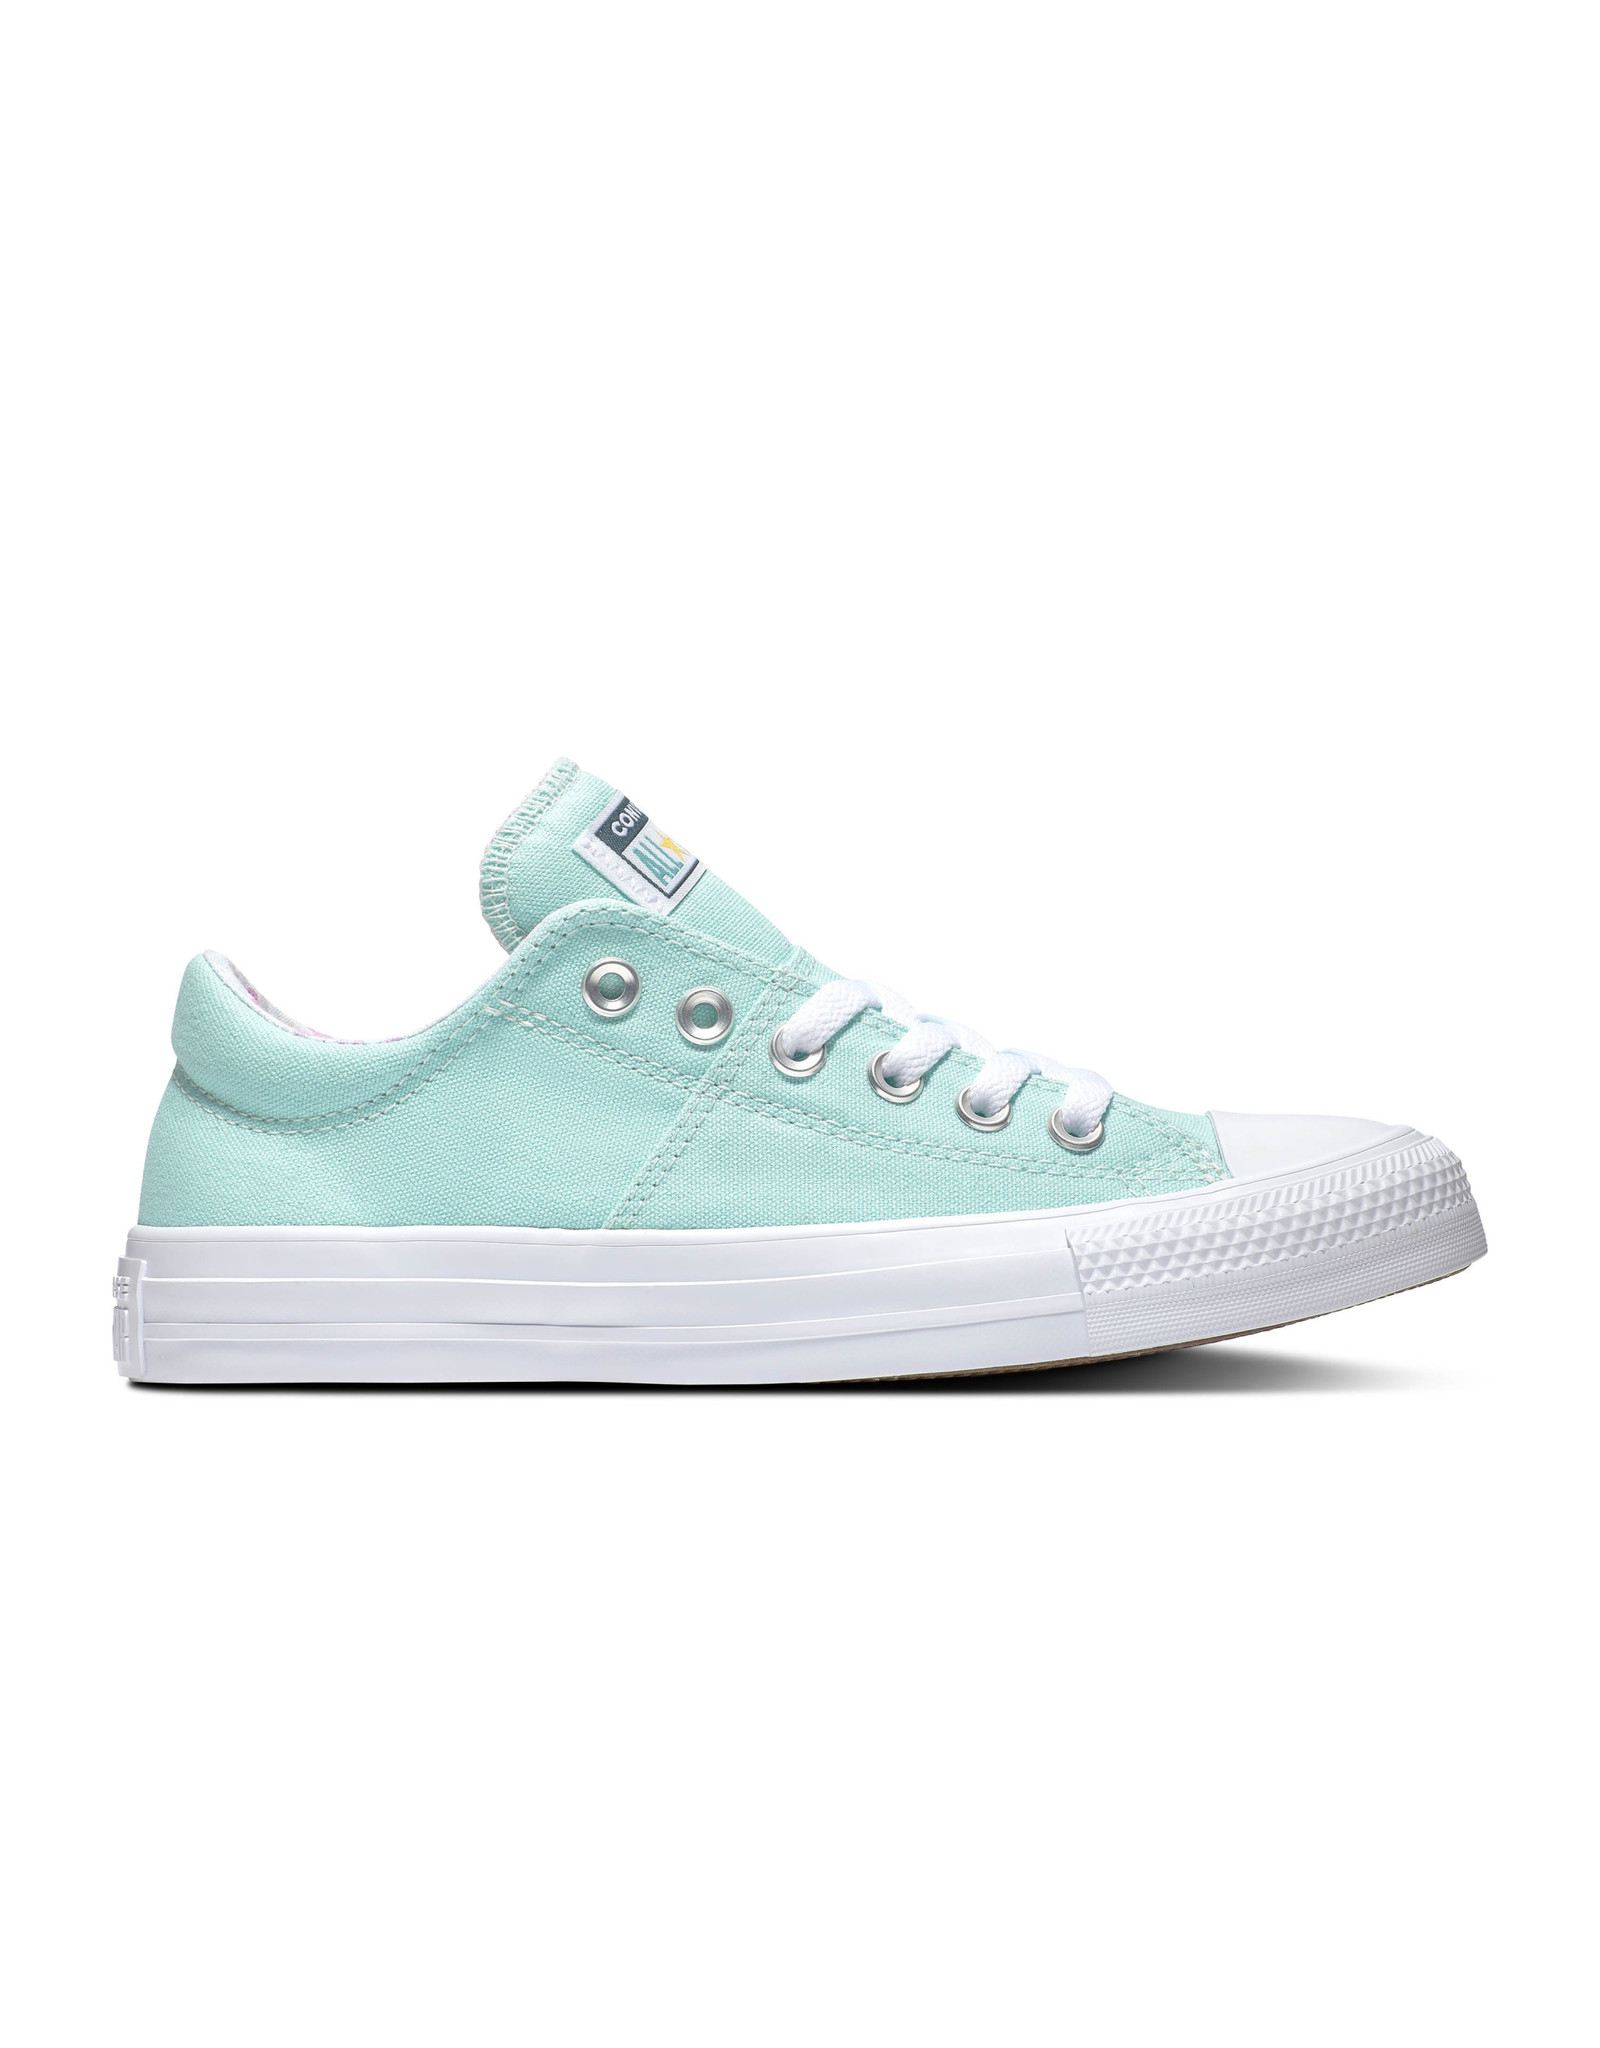 CONVERSE CHUCK TAYLOR ALL STAR  MADISON OX OCEAN MINT/MULTI/WHITE C14MO-567018C